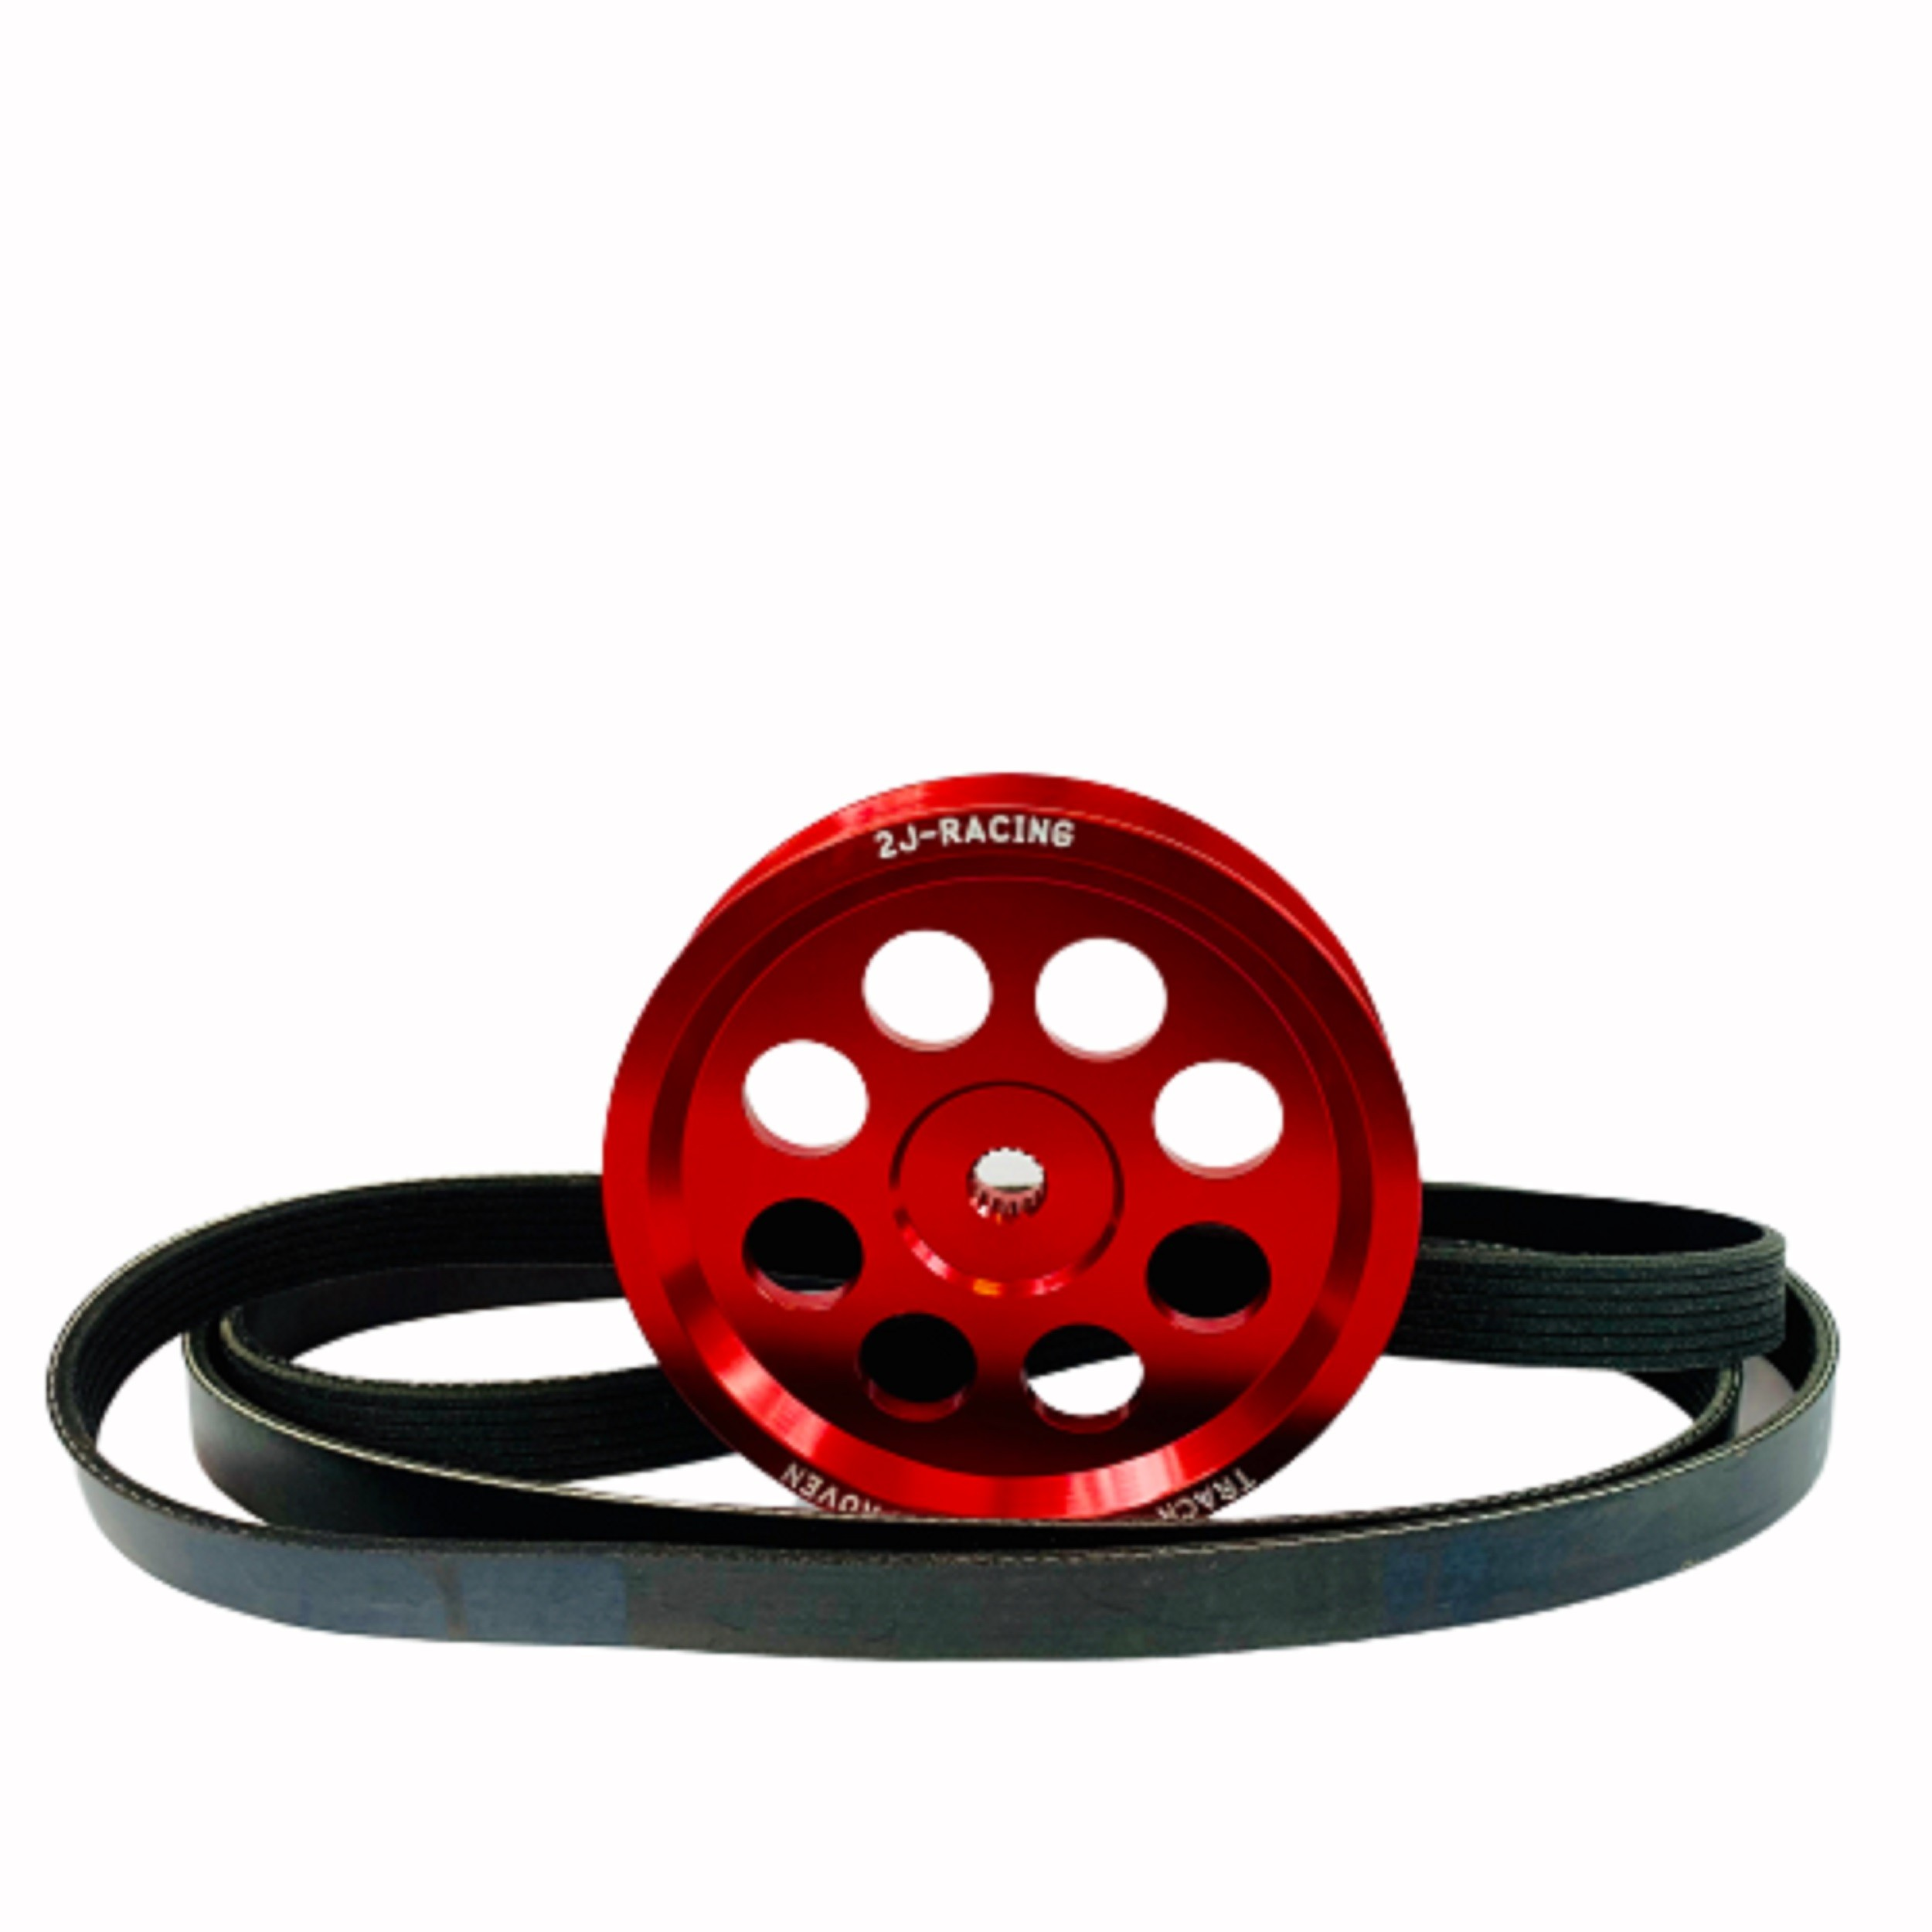 2JR Underdrive Lightweight Power Steering Pulley (QR25)